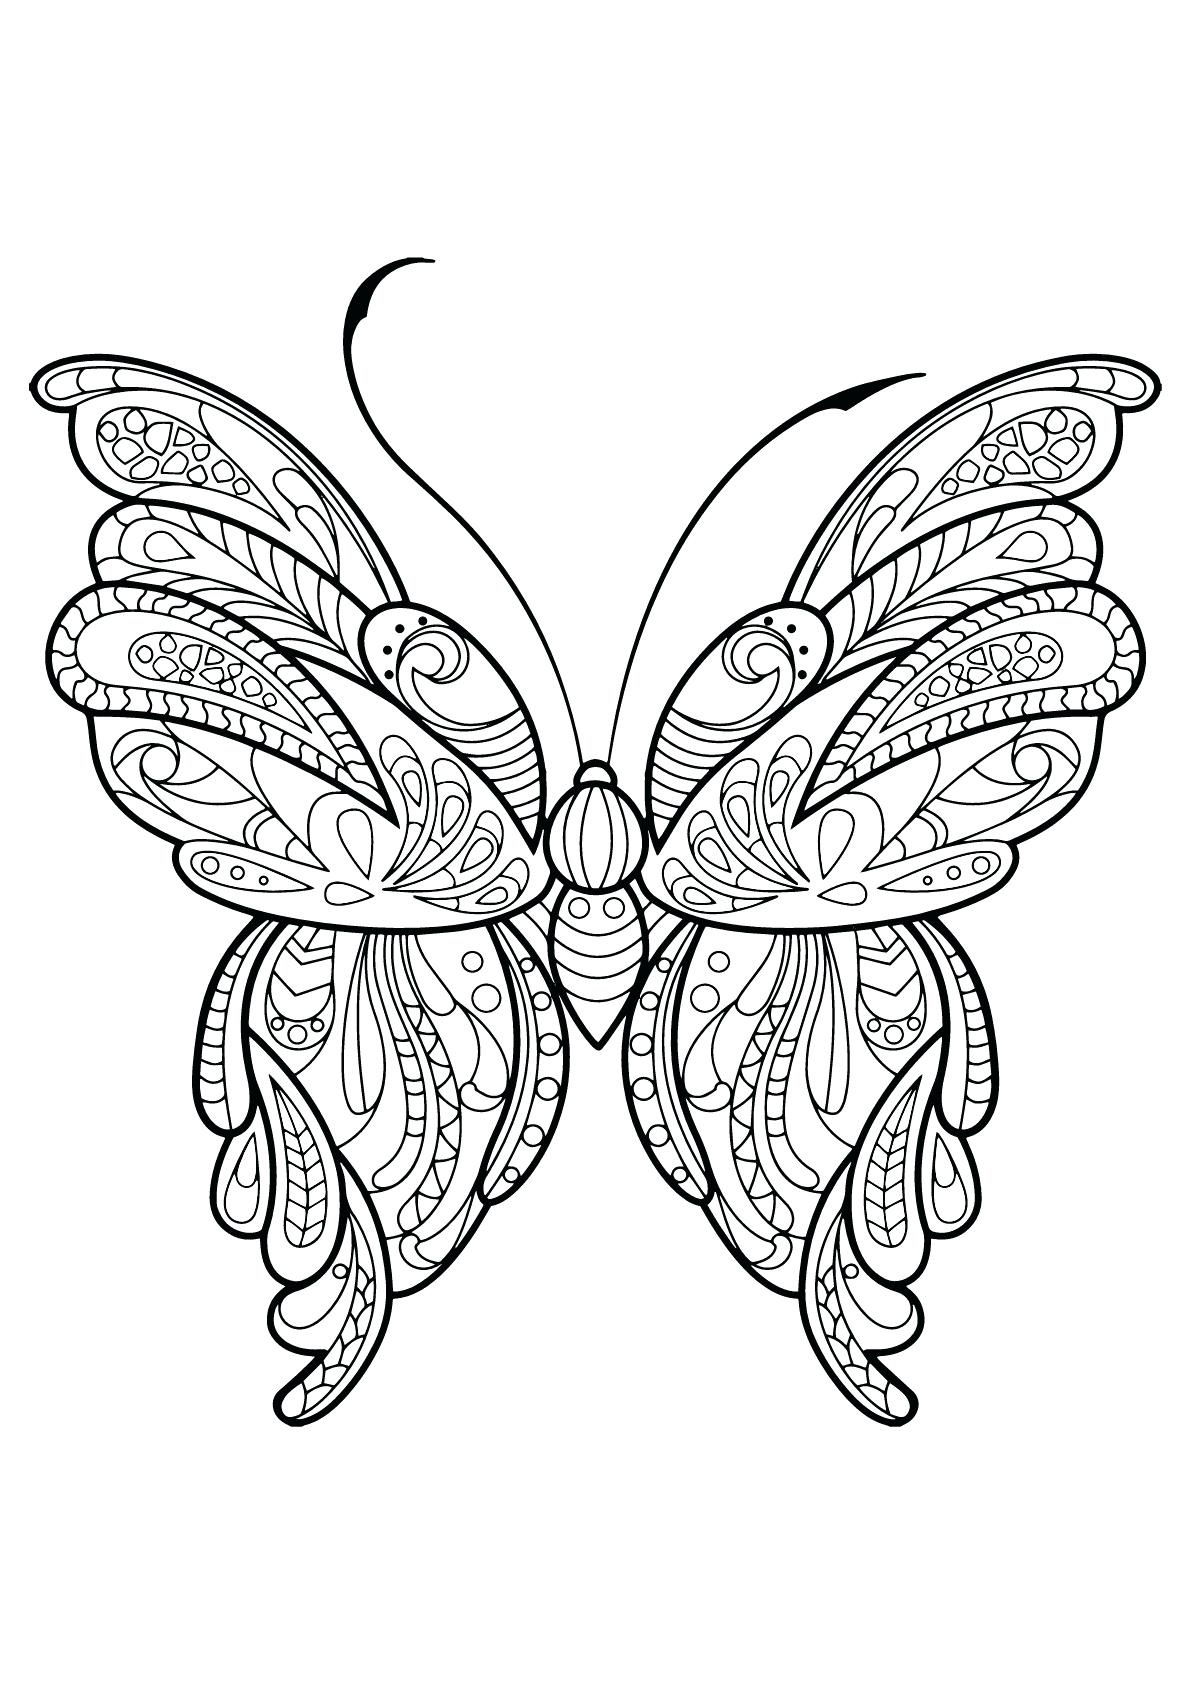 1191x1684 Coloring Coloring Page Butterfly Life Cycle. Coloring Page Butterfly